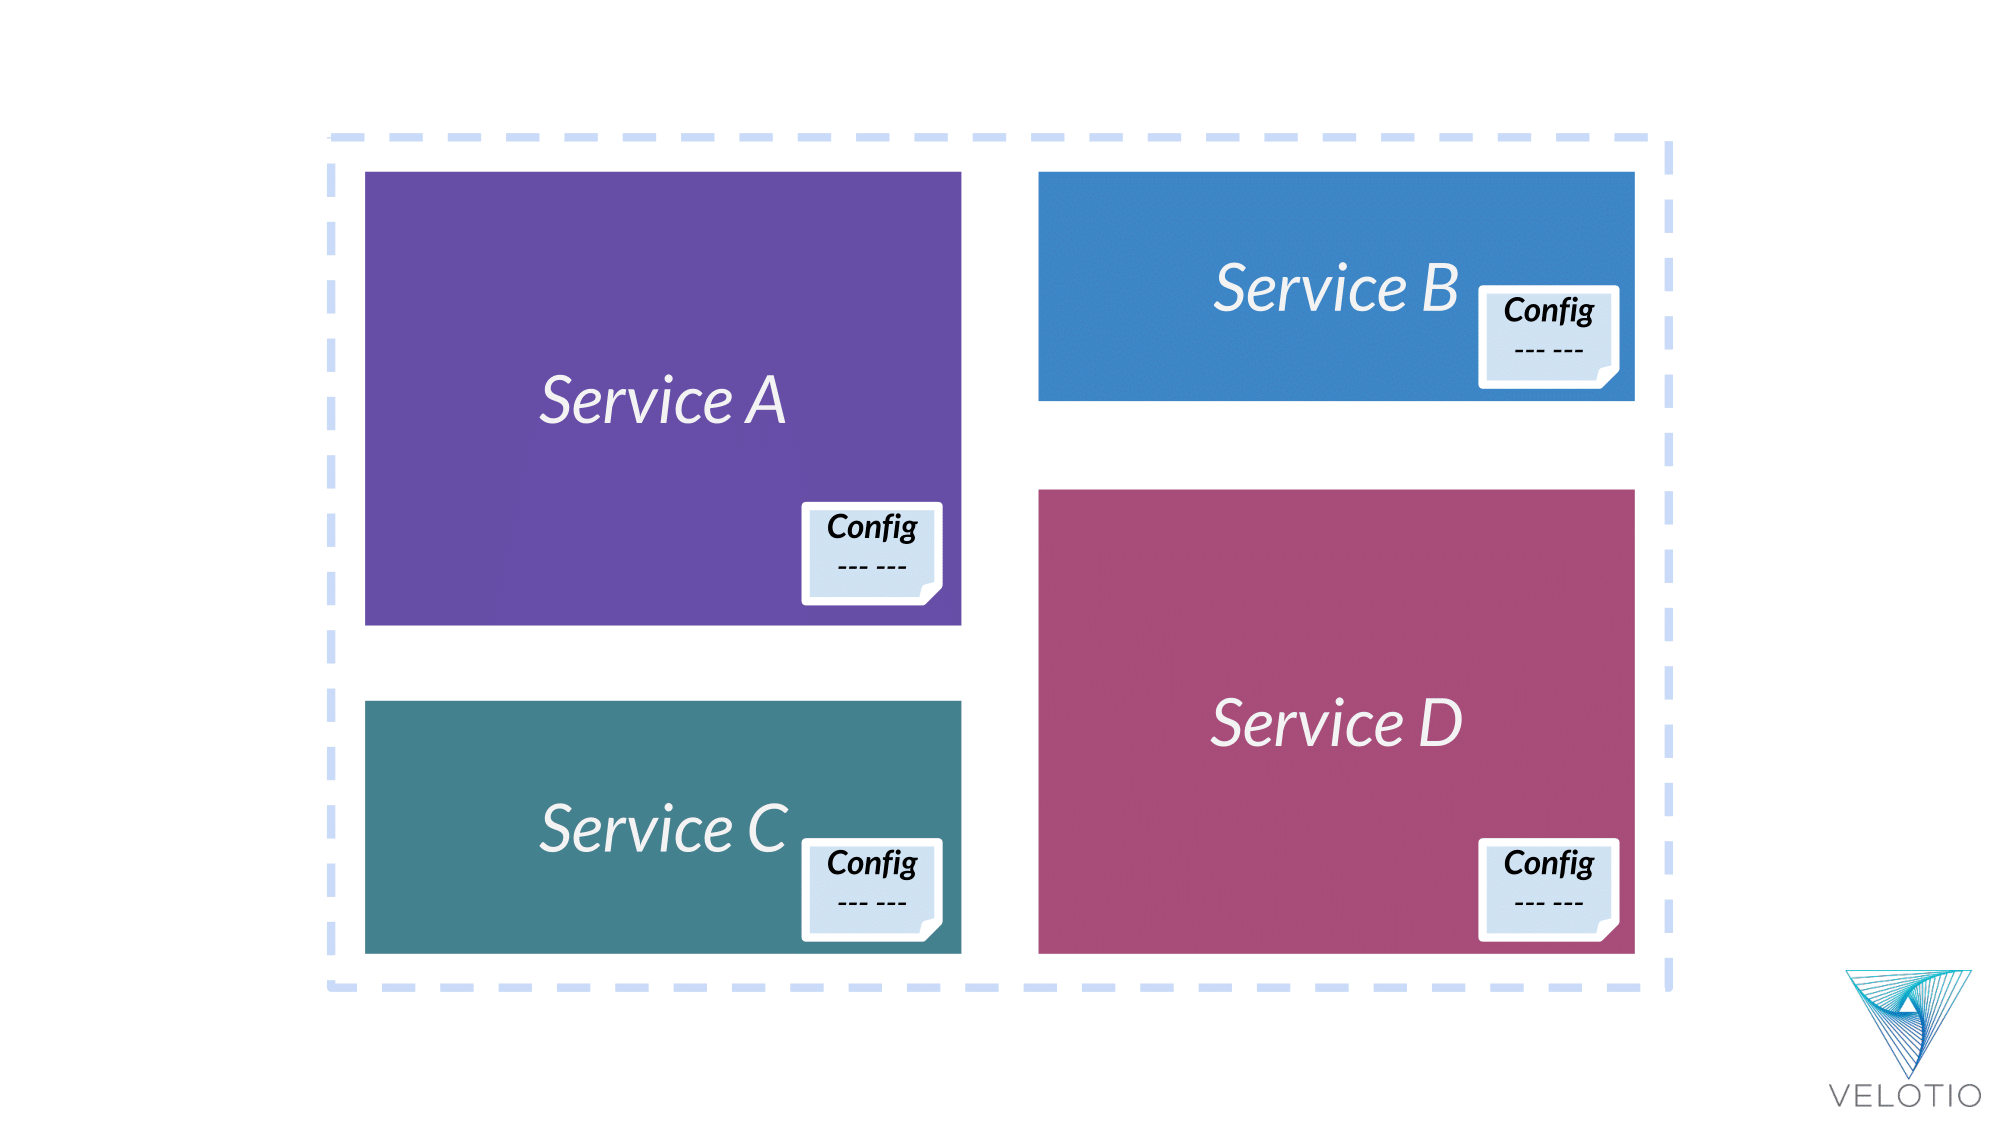 A copy of application configuration is distributed across different services